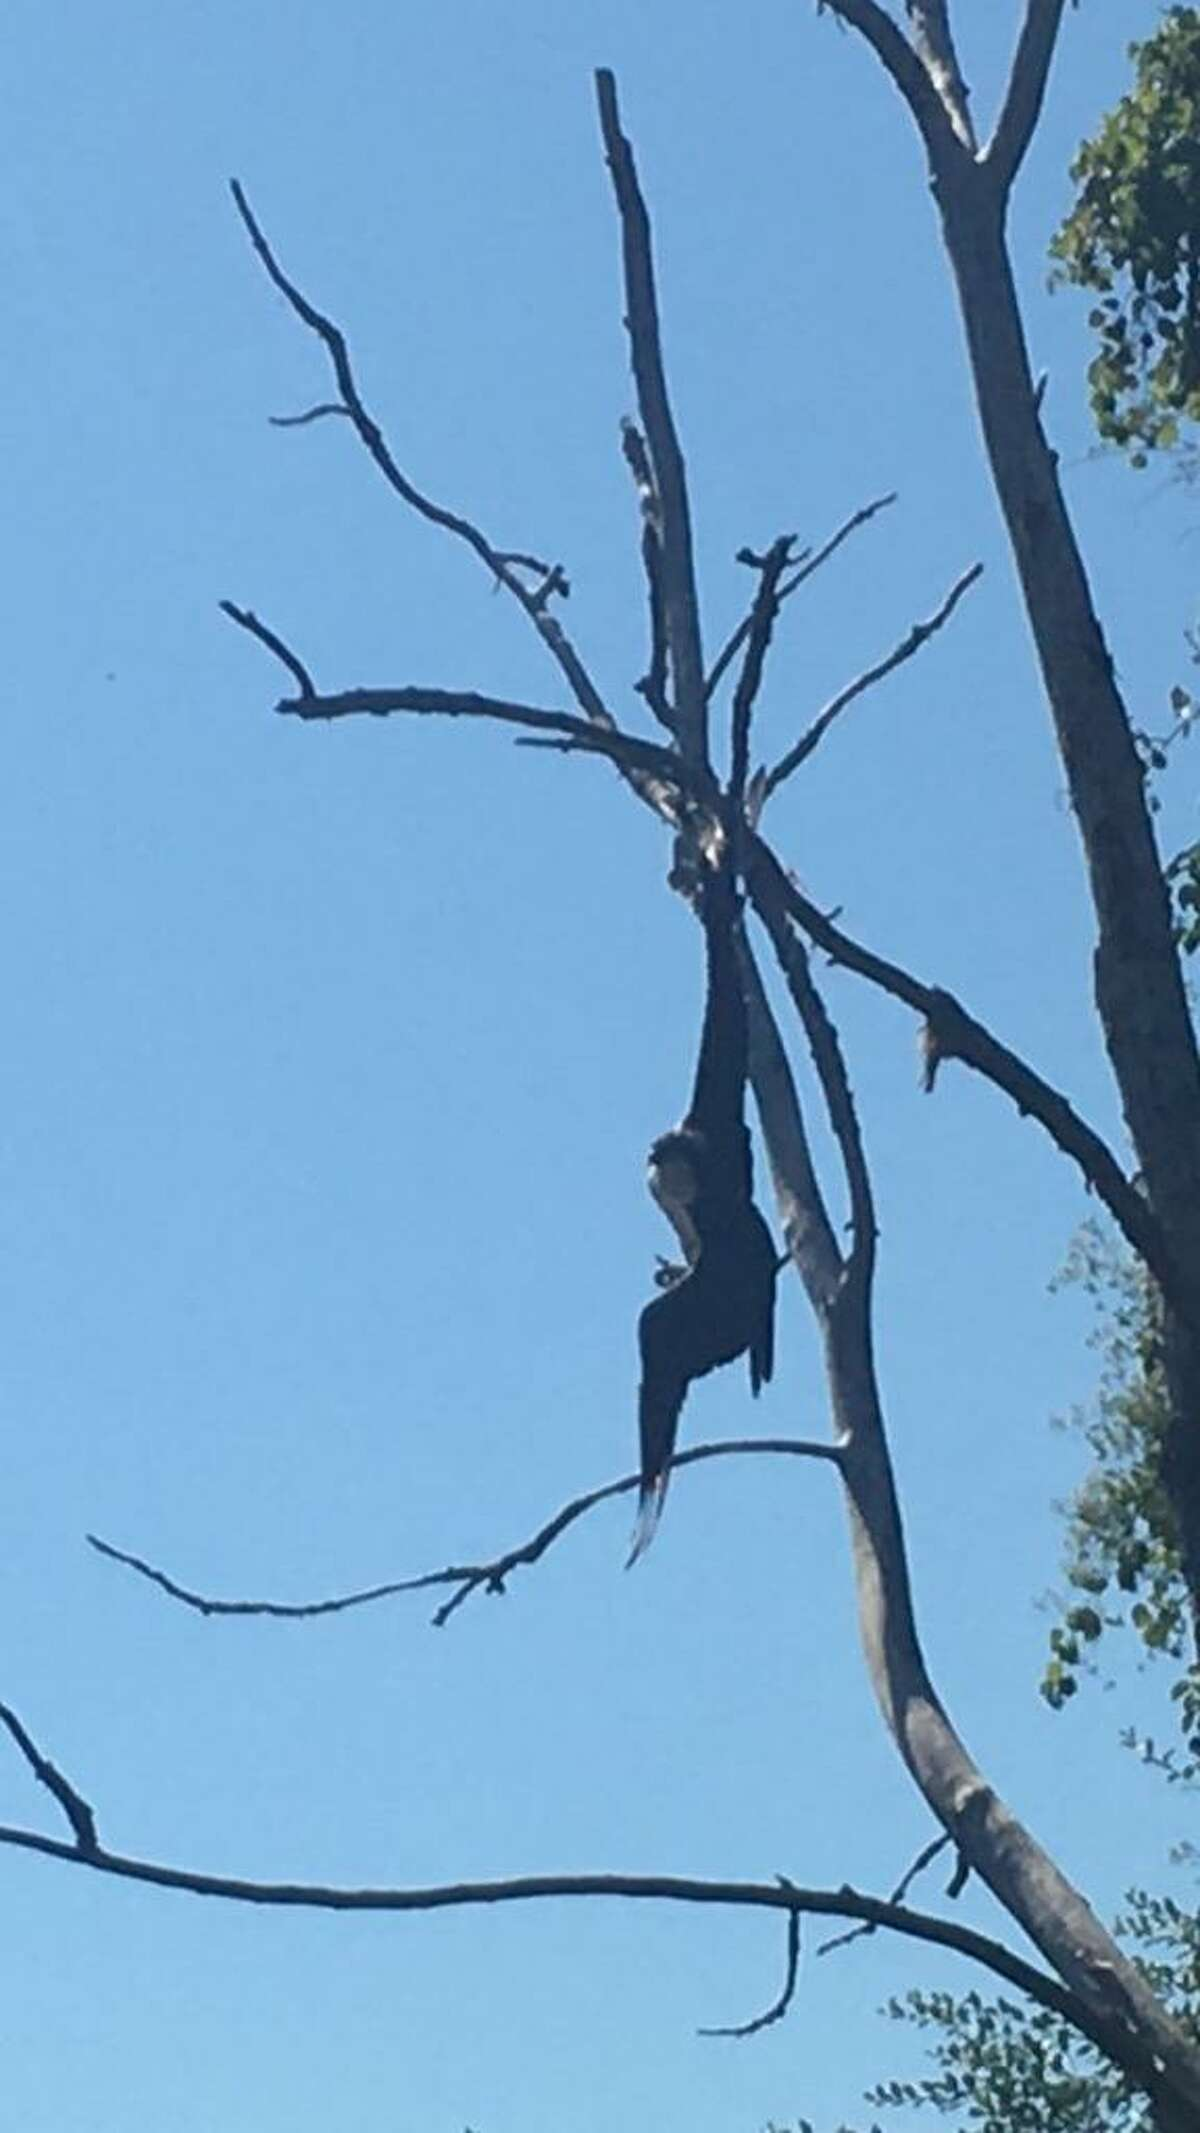 A person saved an osprey tangled in a fishing line and hanging from a tree along the Housatonic River on Sunday.